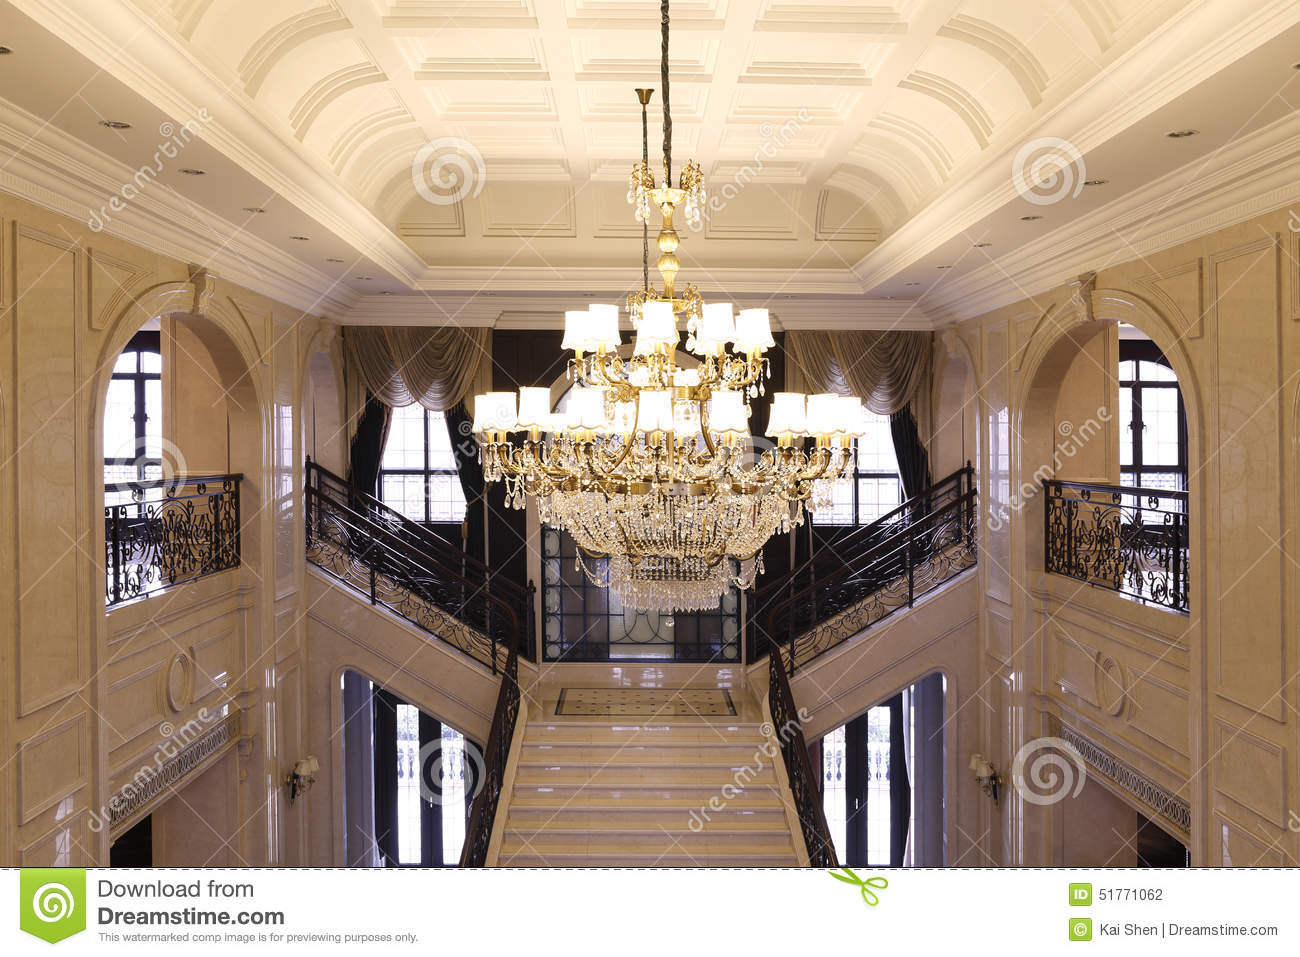 The lobby of the upscale office crystal droplight arches and windows stock photo